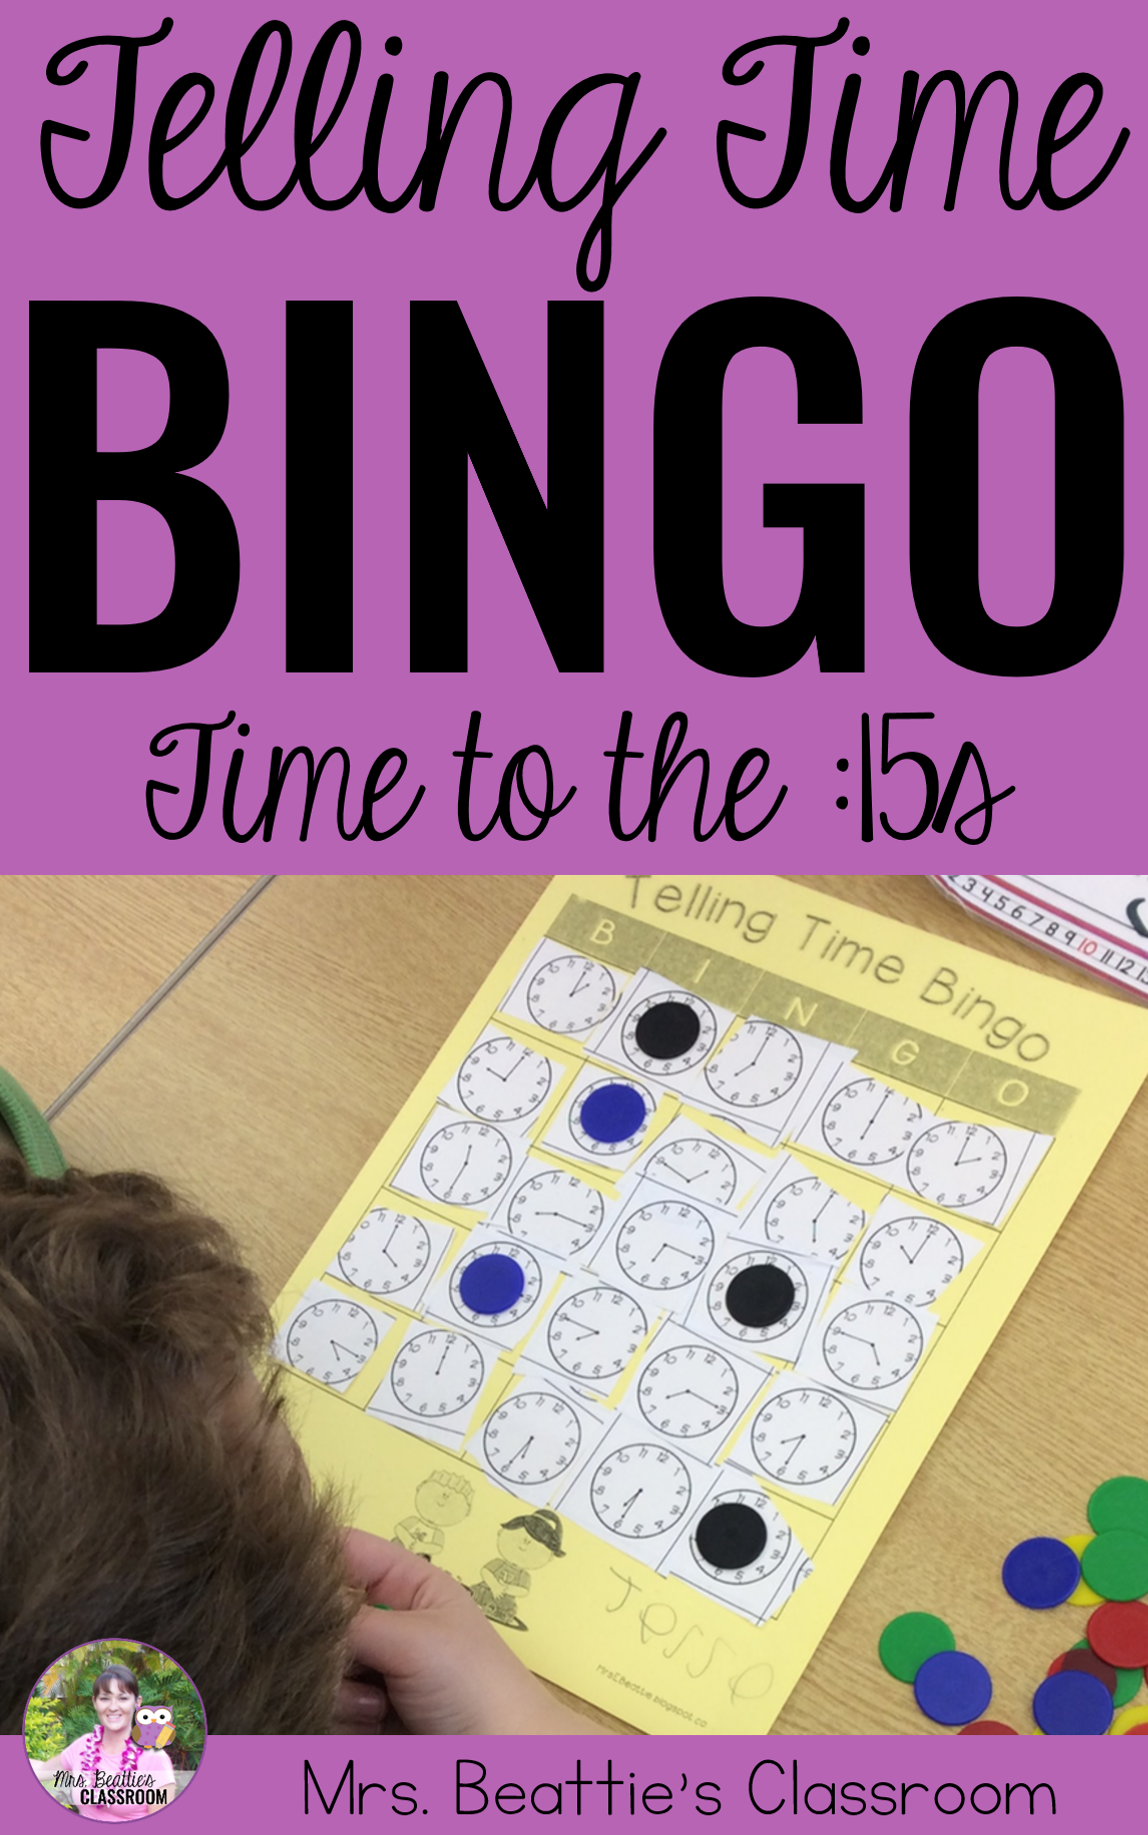 Telling time time to the 15s game this do it yourself bingo game from mrs beatties classroom includes a blank solutioingenieria Image collections